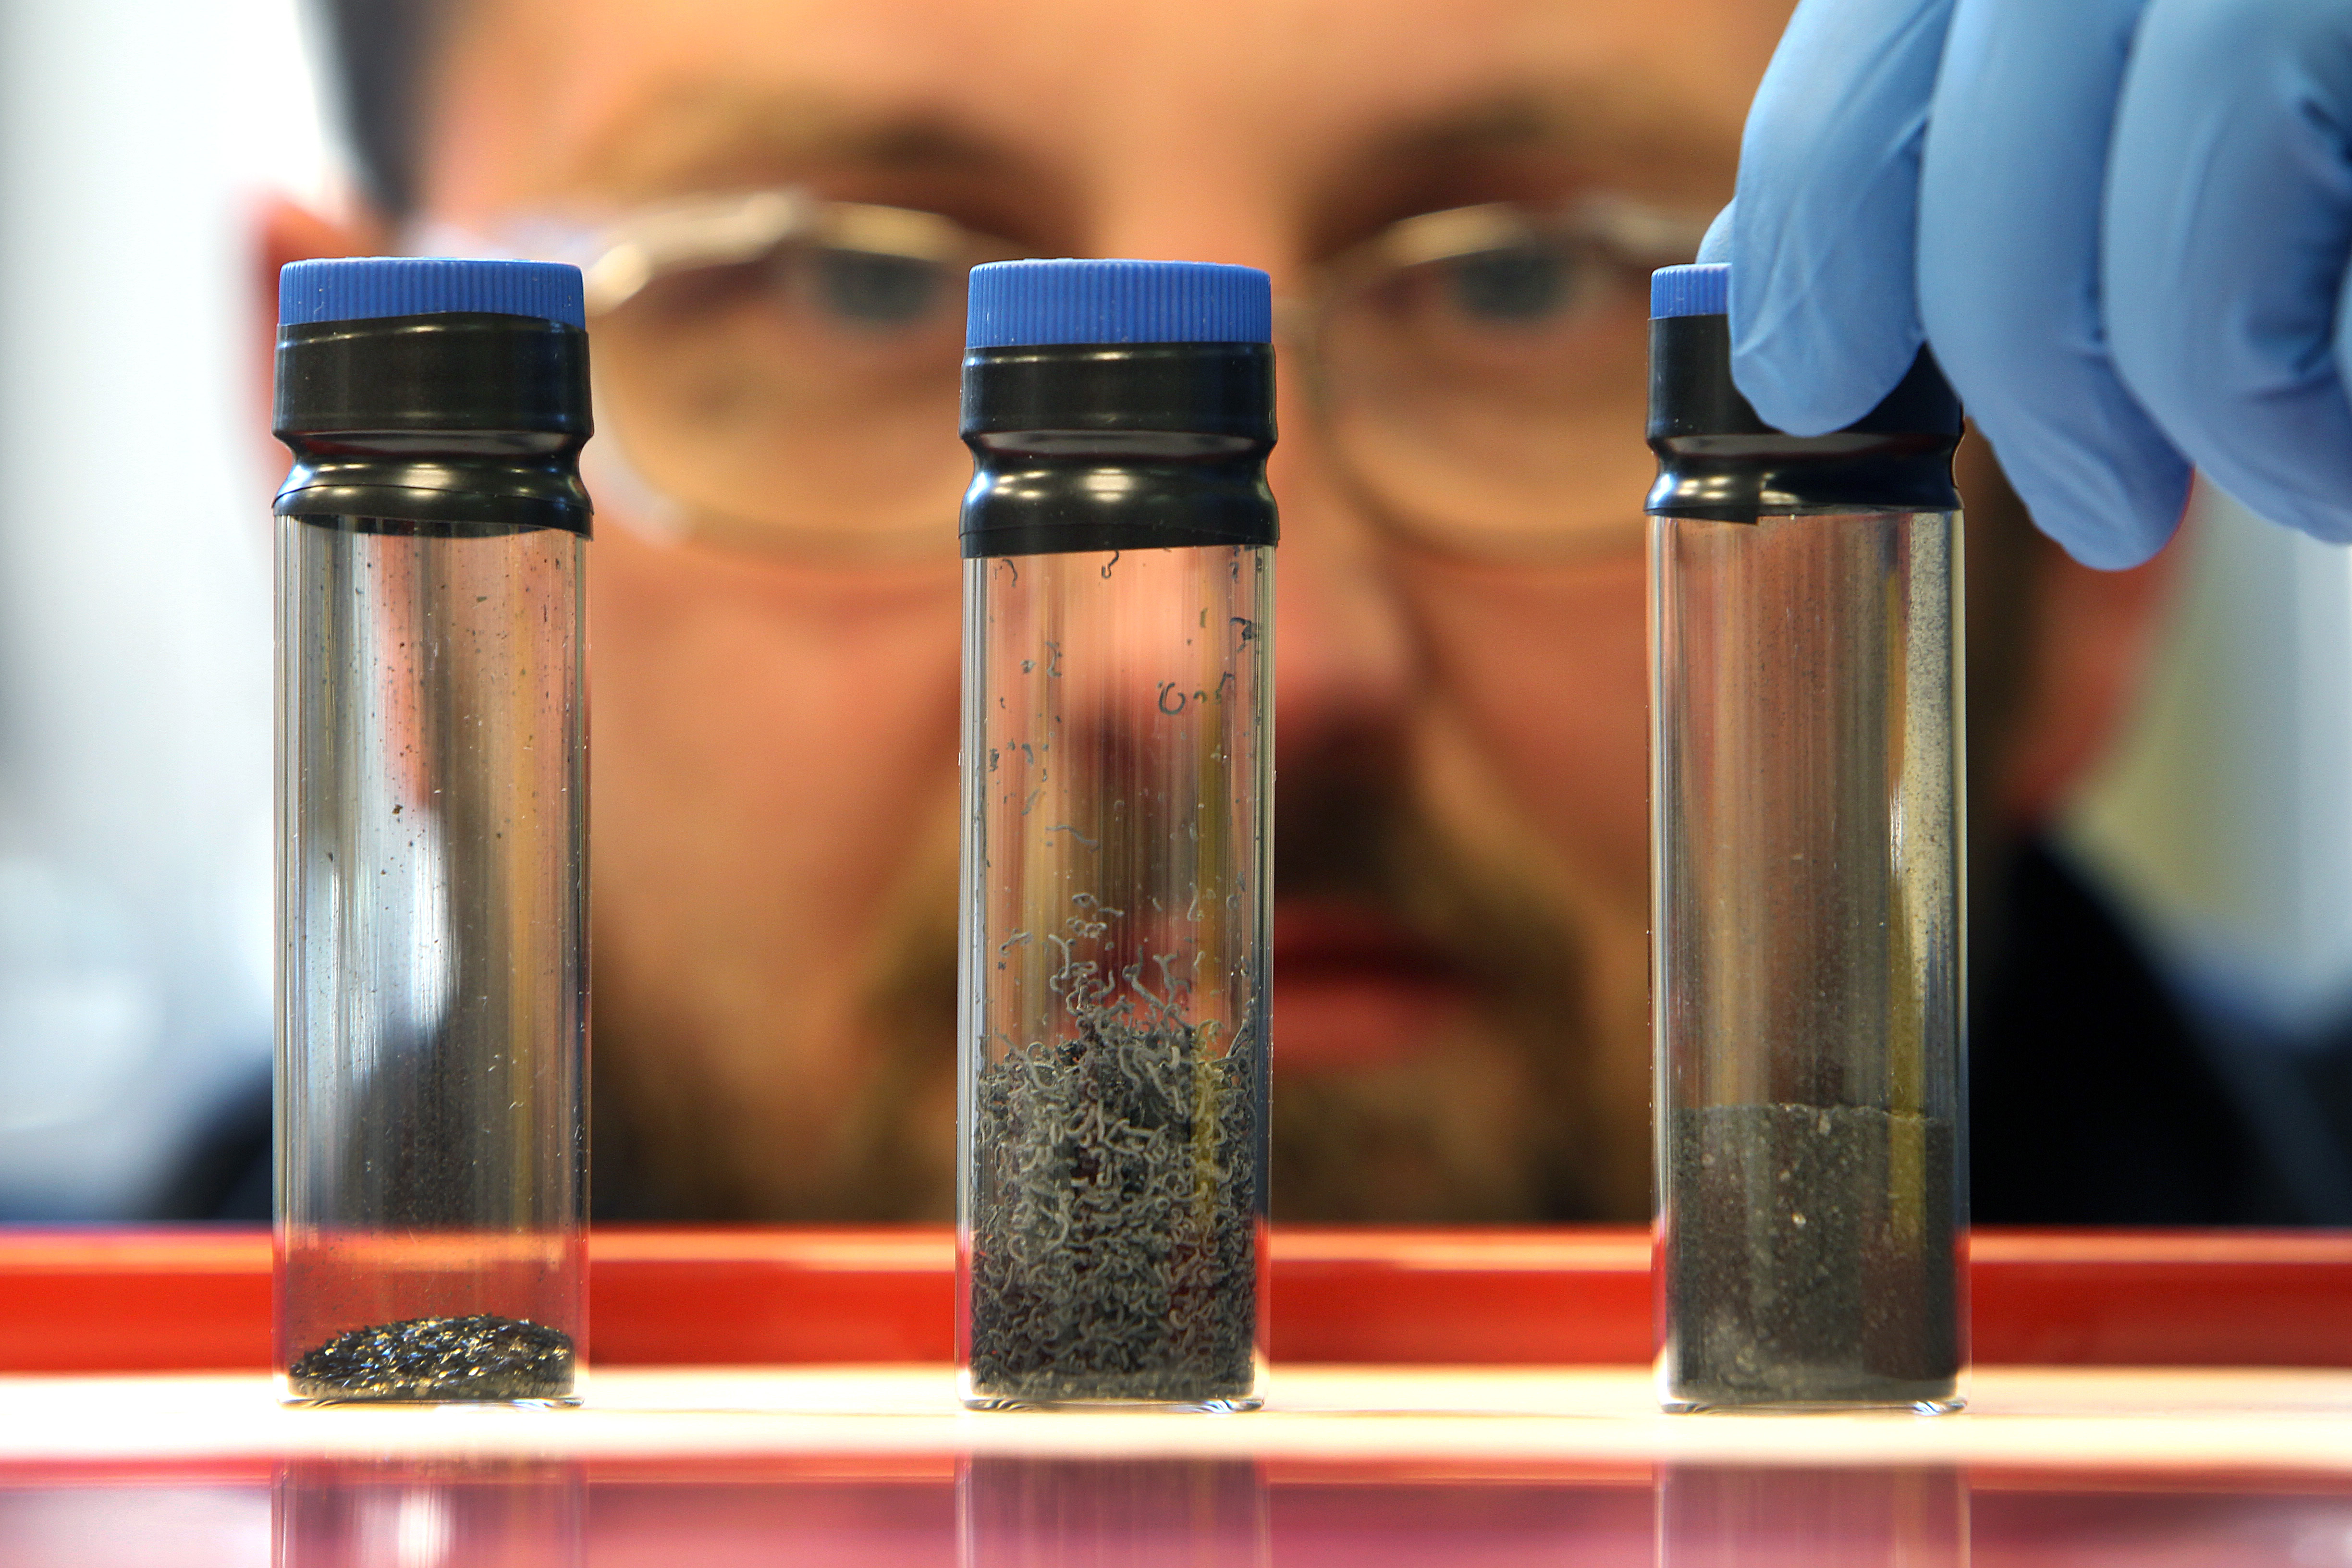 BILLERICA, MA - JANUARY 4: At Cabot Corporation, Senior Researcher Matt Hesketh examines the progression of graphene in three vials. The vial on the left is graphite, the middle one is graphite expanded, and the one on the right is graphene. (Photo by John Tlumacki/The Boston Globe via Getty Images)